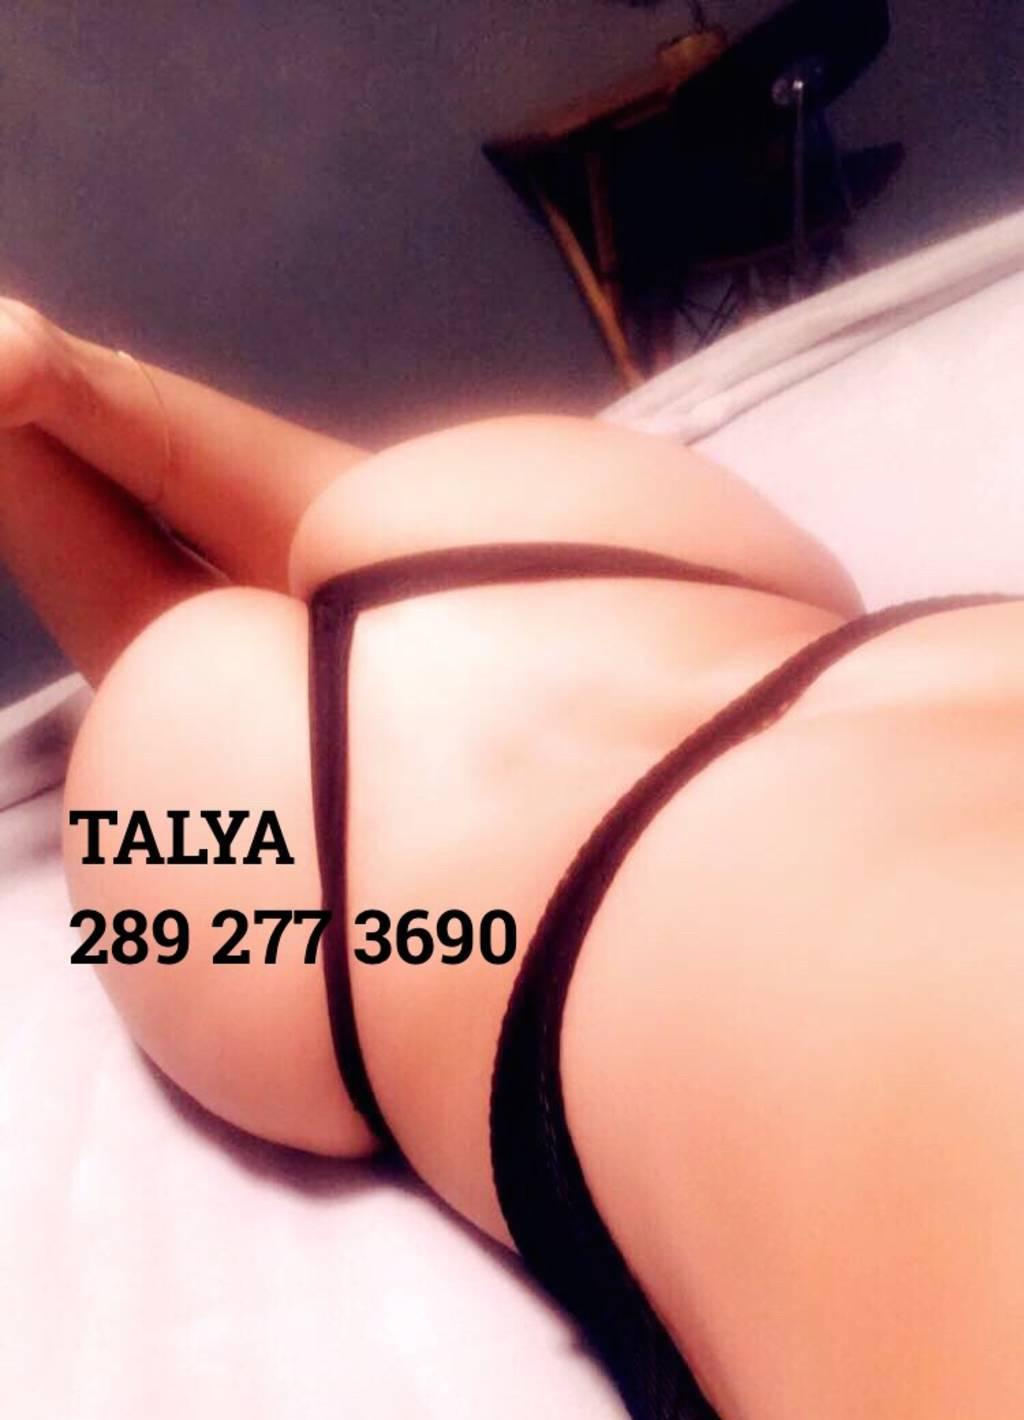 OUTCALL Finest and Sweetest KITTy TALYA the party girl